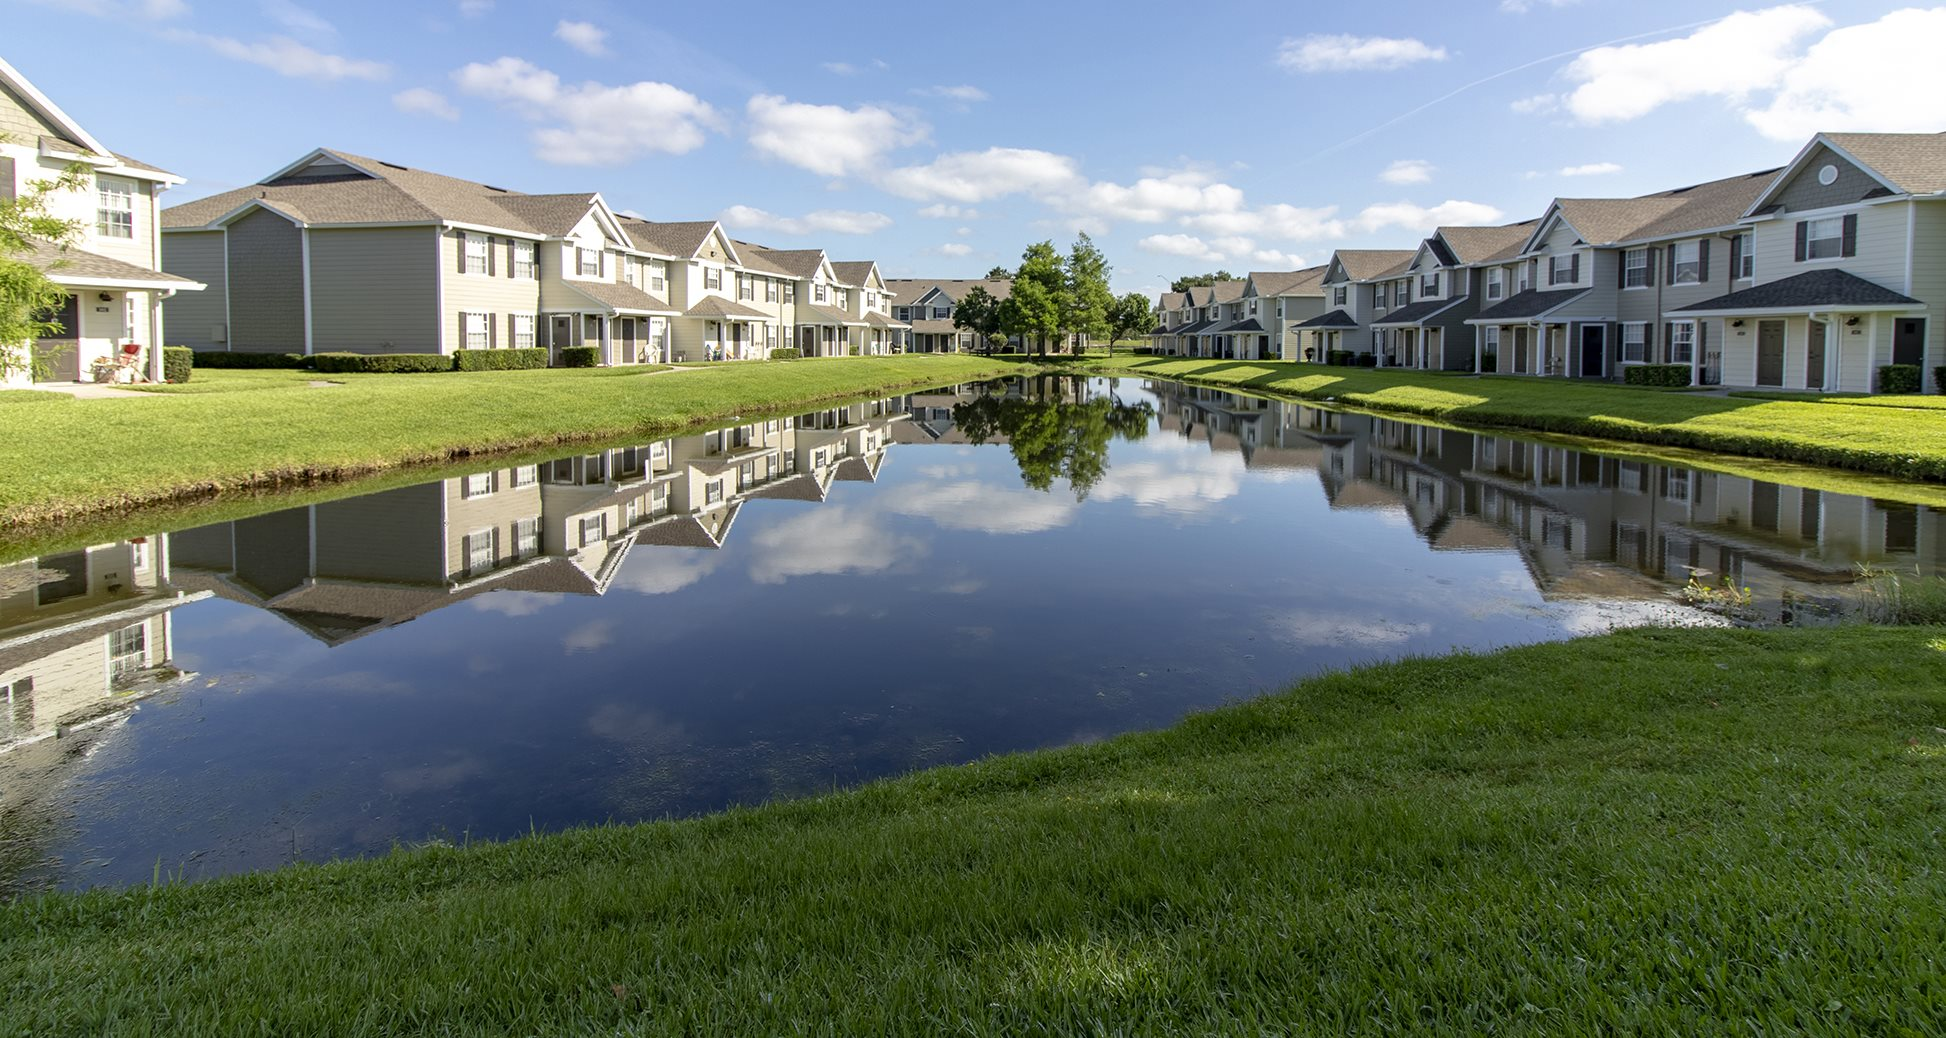 Waterford East Apartments for rent in Orlando, FL. Make this community your new home or visit other Concord Rents communities at ConcordRENTS.com. Lake and building exterior